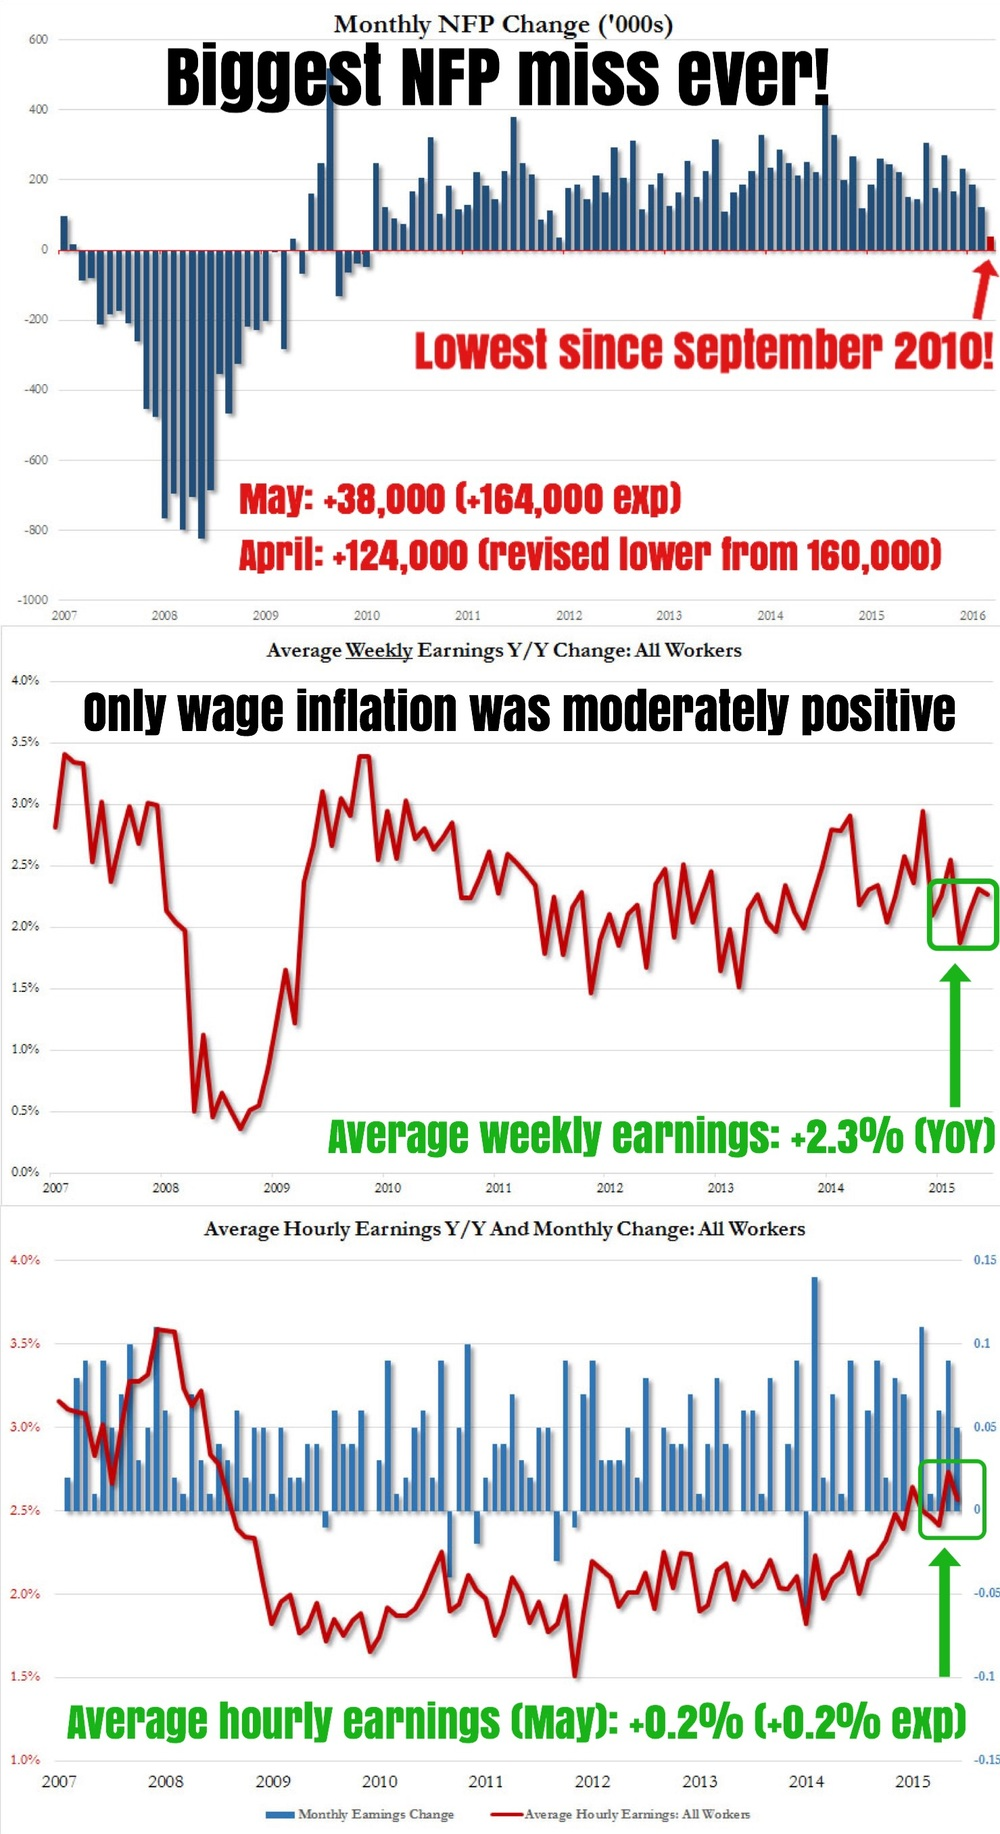 """Here's the full story of the just released May NFP report by the BLS that saw the weakest jobs gains in more than 5 years and the biggest miss on consensus expectations ever! Markets are thoroughly reeling from this massive negative shock.    In May, a paltry 38,000 jobs were added, which was a plunge from April's downward revised 123,000 (previously 160,000).    The change in total nonfarm payroll employment for March was revised from 208,000 to 186,000, while the change for April was revised from 160,000 to 123,000. With these revisions, employment gains in March and April combined were 59,000 less than previously reported. Over the past 3 months, job gains have averaged only 116,000 per month, much lower than a year ago.    The household survey was equally bad, with only 26,000 jobs added in May, bringing the total to 151,030. This happened as the number of unemployed persons tumbled from 7,920,000 to 7,436,000, driven by a massive surge in people not in the labor force which soared to a record 94.7 million, a monthly increase of over 600,000 workers!    This caused the U3 unemployment rate to fall from 5% in April to 4.7% in May (4.9% expected) and is the lowest since 2007. Again, this was not because of jobs added but because the labor force shrank in size as a record number of Americans are now outside the labor force — A massive exodus of people from the labor force amounting to 664,000 potential workers that exited the labor force in May. The number of people outside the labor force stood at a record high of 94.7 million in May!    The only silver lining was in wage inflation, where average hourly earnings rose by +0.2% MoM (+0.2% expected) but down from April's +0.3%, to $25.59. Average weekly earnings also posted a modest +2.3% YoY increase.    Full details from the BLS:    Total nonfarm payroll employment changed little in May (+38,000). Job growth occurred in health care. Mining continued to lose jobs, and a strike resulted in job losses in information.    Health care added 46,000 jobs in May, with increases occurring in ambulatory health care services (+24,000), hospitals (+17,000), and nursing care facilities (+5,000). Over the year, health care employment has increased by 487,000.    In May, mining employment continued to decline (-10,000). Since reaching a peak in September 2014, mining has lost 207,000 jobs. Support activities for mining accounted for three-fourths of the jobs lost during this period, including 6,000 in May.    Employment in information declined by 34,000 in May. About 35,000 workers in the telecommunications industry were on strike and not on company payrolls during the survey reference period.    Within manufacturing, employment in durable goods declined by 18,000 in May, with job losses of 7,000 in machinery and 3,000 in furniture and related products.    Employment in professional and business services changed little in May (+10,000), after increasing by 55,000 in April. Within the industry, professional and technical services added 26,000 jobs in May, in line with average monthly gains over the prior 12 months. Employment in temporary help services was little changed over the month (-21,000) but is down by 64,000 thus far this year.    Employment in other major industries, including construction, wholesale trade, retail trade, transportation and warehousing, financial activities, leisure and hospitality, and government, changed little over the month.    The average workweek for all employees on private nonfarm payrolls was unchanged at 34.4 hours in May. The manufacturing workweek increased by 0.1 hour to 40.8 hours, and manufacturing overtime was unchanged at 3.2 hours. The average workweek for production and nonsupervisory employees on private nonfarm payrolls was unchanged at 33.6 hours.    In May, average hourly earnings for all employees on private nonfarm payrolls increased by 5 cents to $25.59, following an increase of 9 cents in April. Over the year, average hourly earnings have risen by 2.5 percent. Average hourly earnings of private-sector production and nonsupervisory employees increased by 3 cents to $21.49 in May.    The change in total nonfarm payroll employment for March was revised from +208,000 to +186,000, and the change for April was revised from +160,000 to +123,000. With these revisions, employment gains in March and April combined were 59,000 less than previously reported. Over the past 3 months, job gains have averaged 116,000 per month.""    Business Of Finance on Facebook, 3 June 2016"